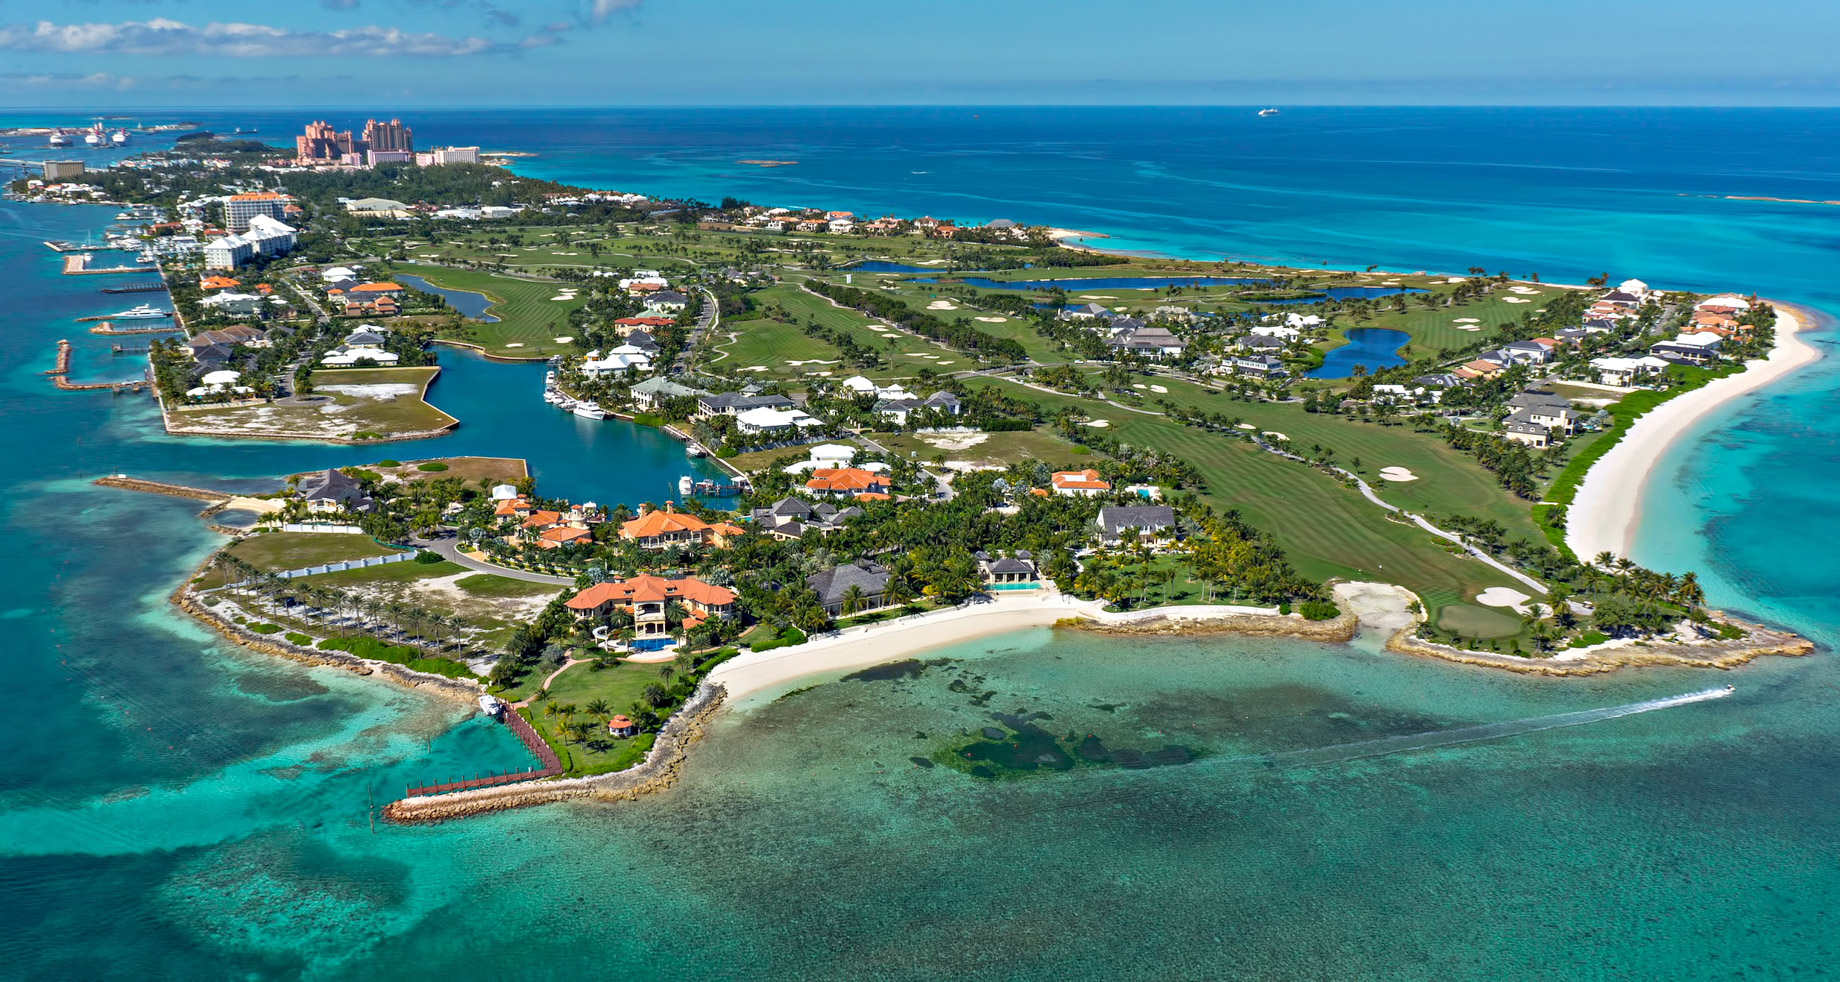 Luxury Homes on Paradise Island in the Bahamas